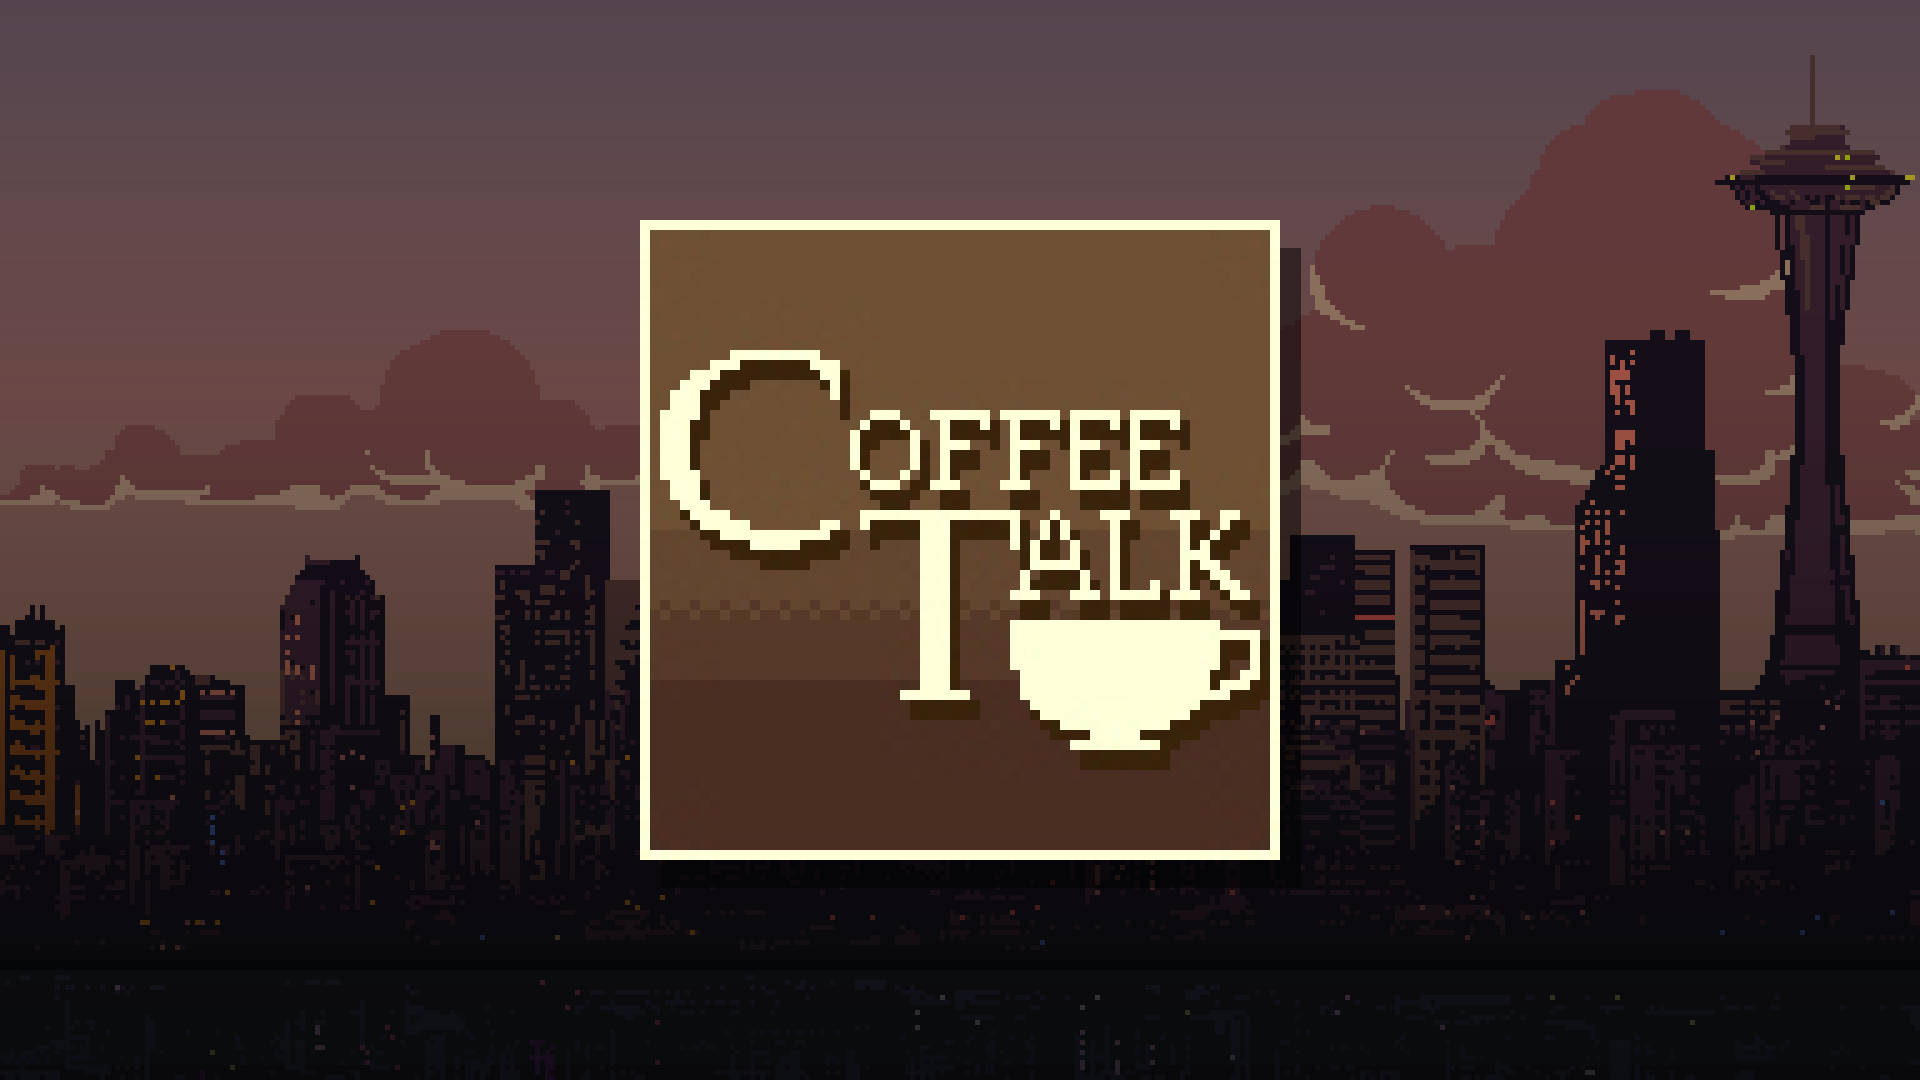 Welcome to Coffee Talk